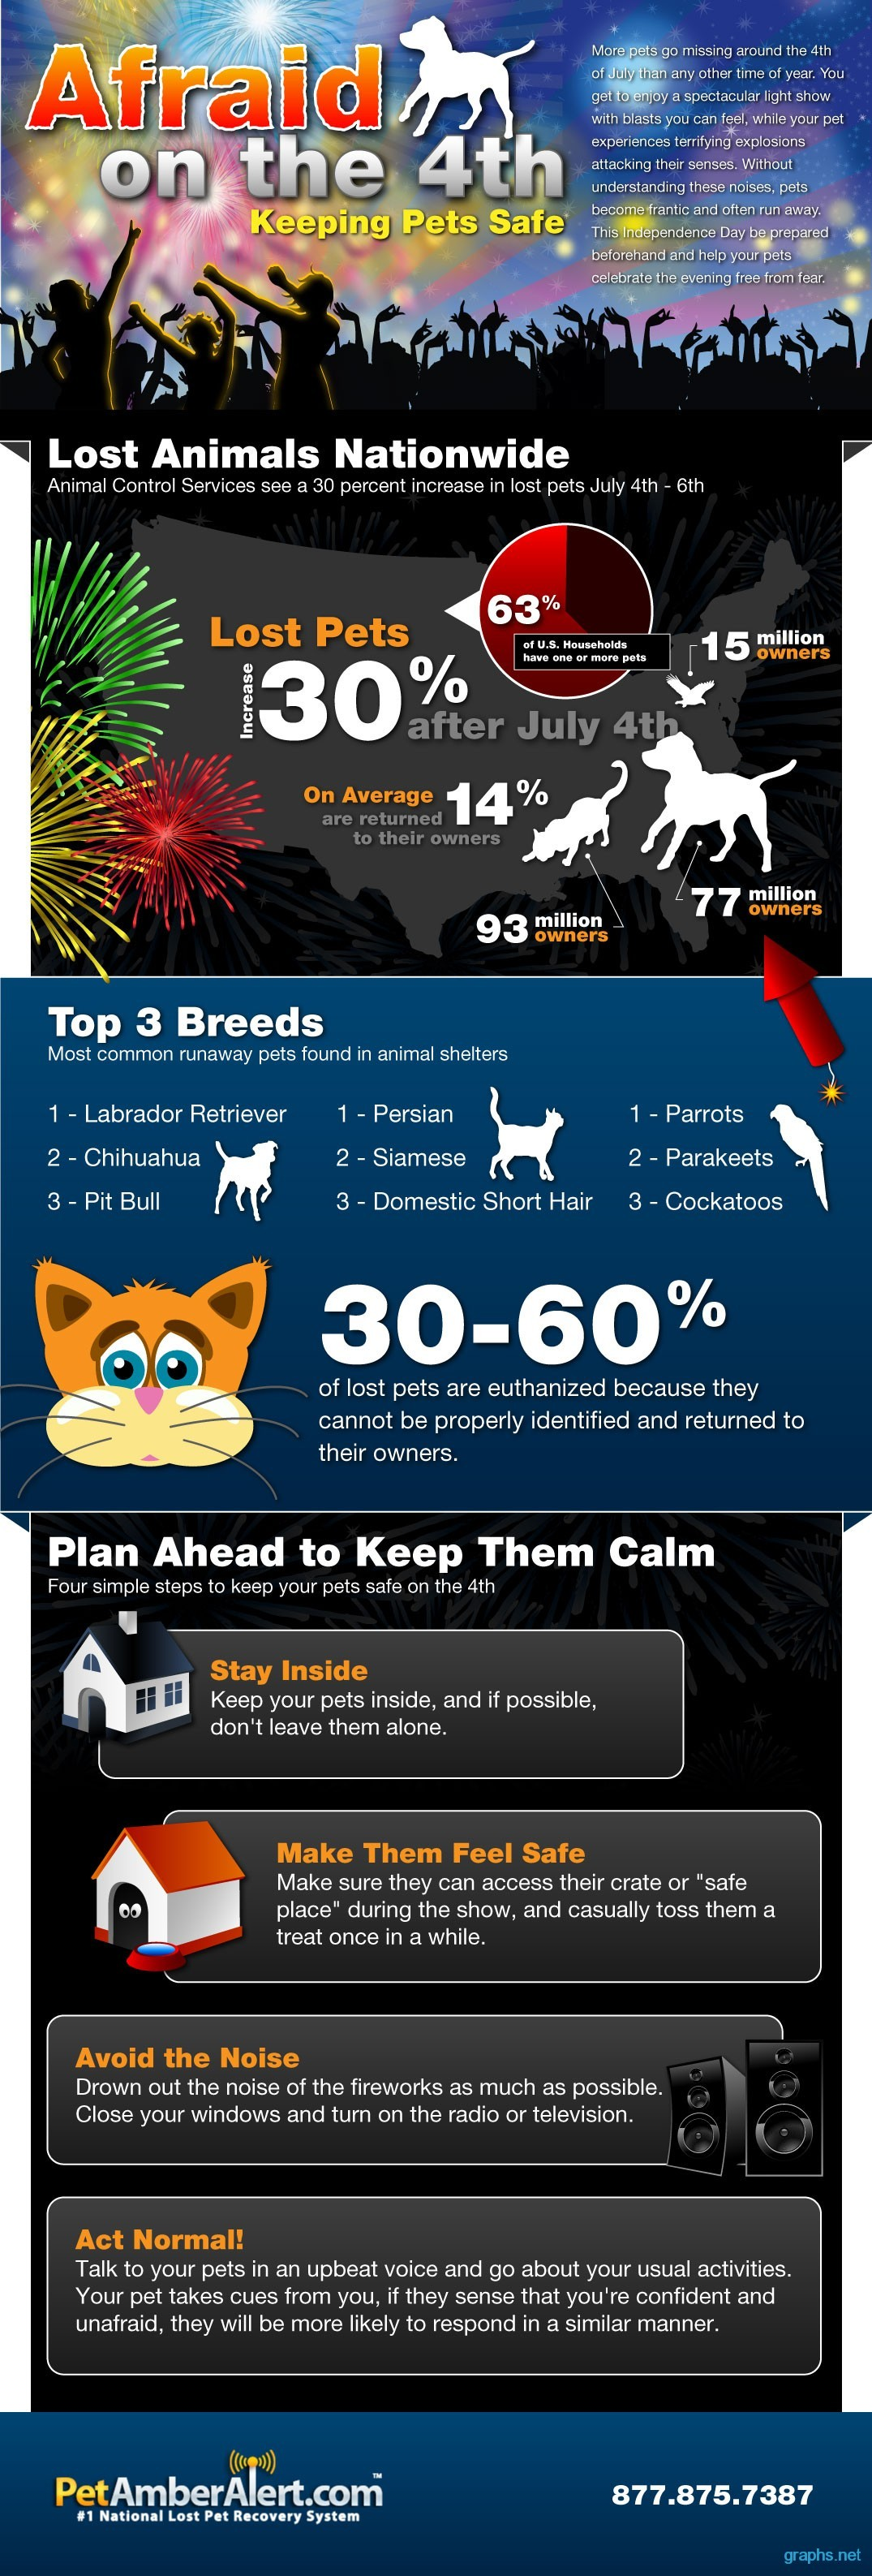 July 4th fireworks safe your pets